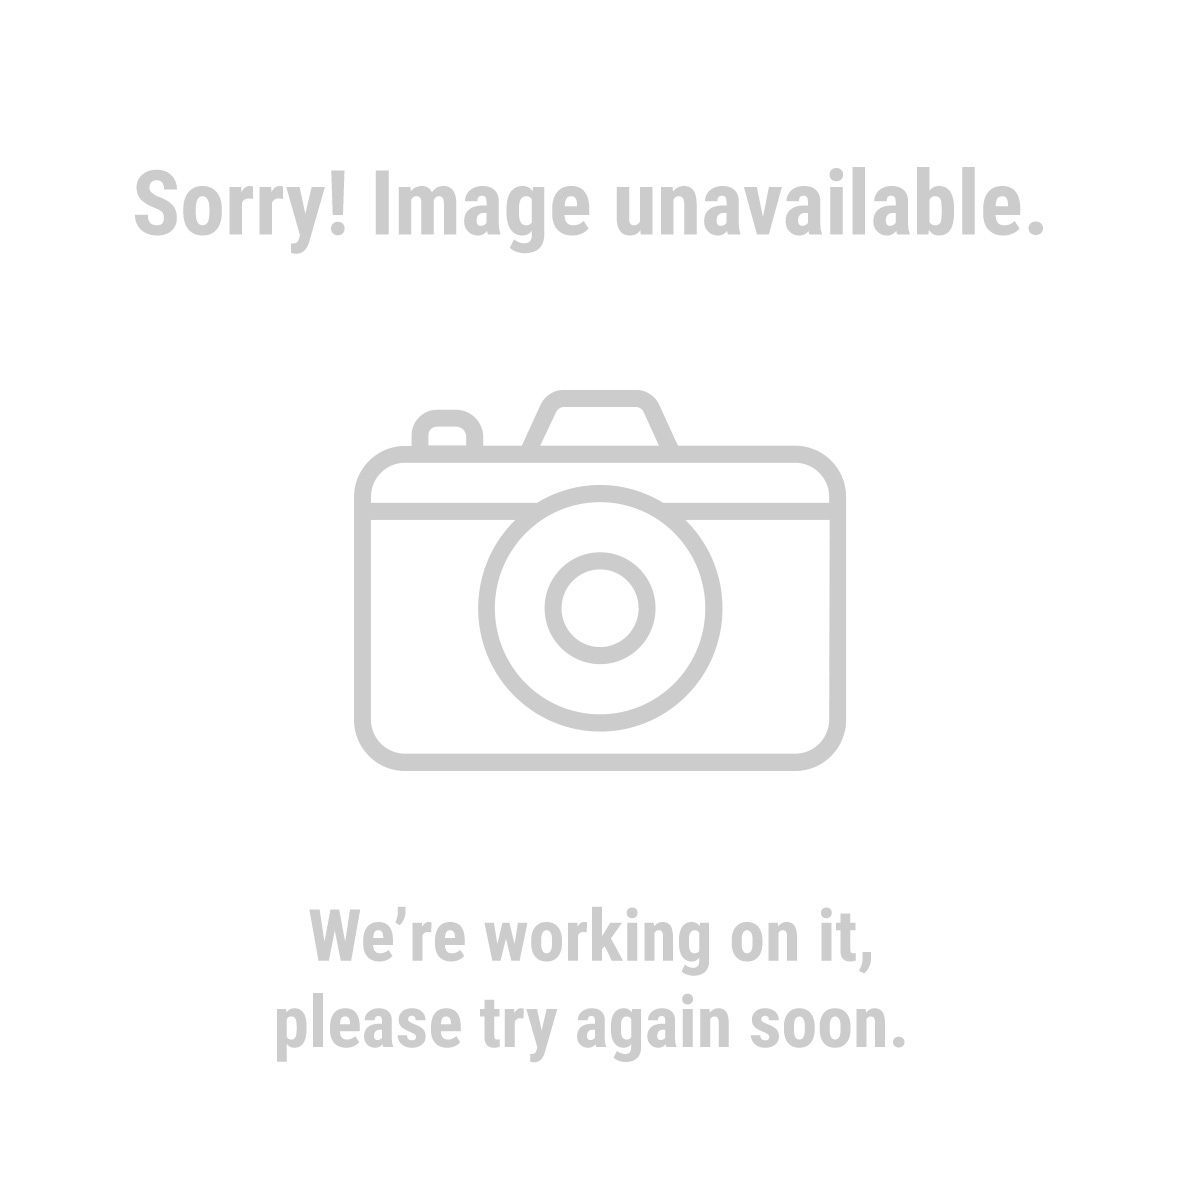 Haul-Master 62703 36 In. x 24 In. Polypropylene Industrial Service Cart